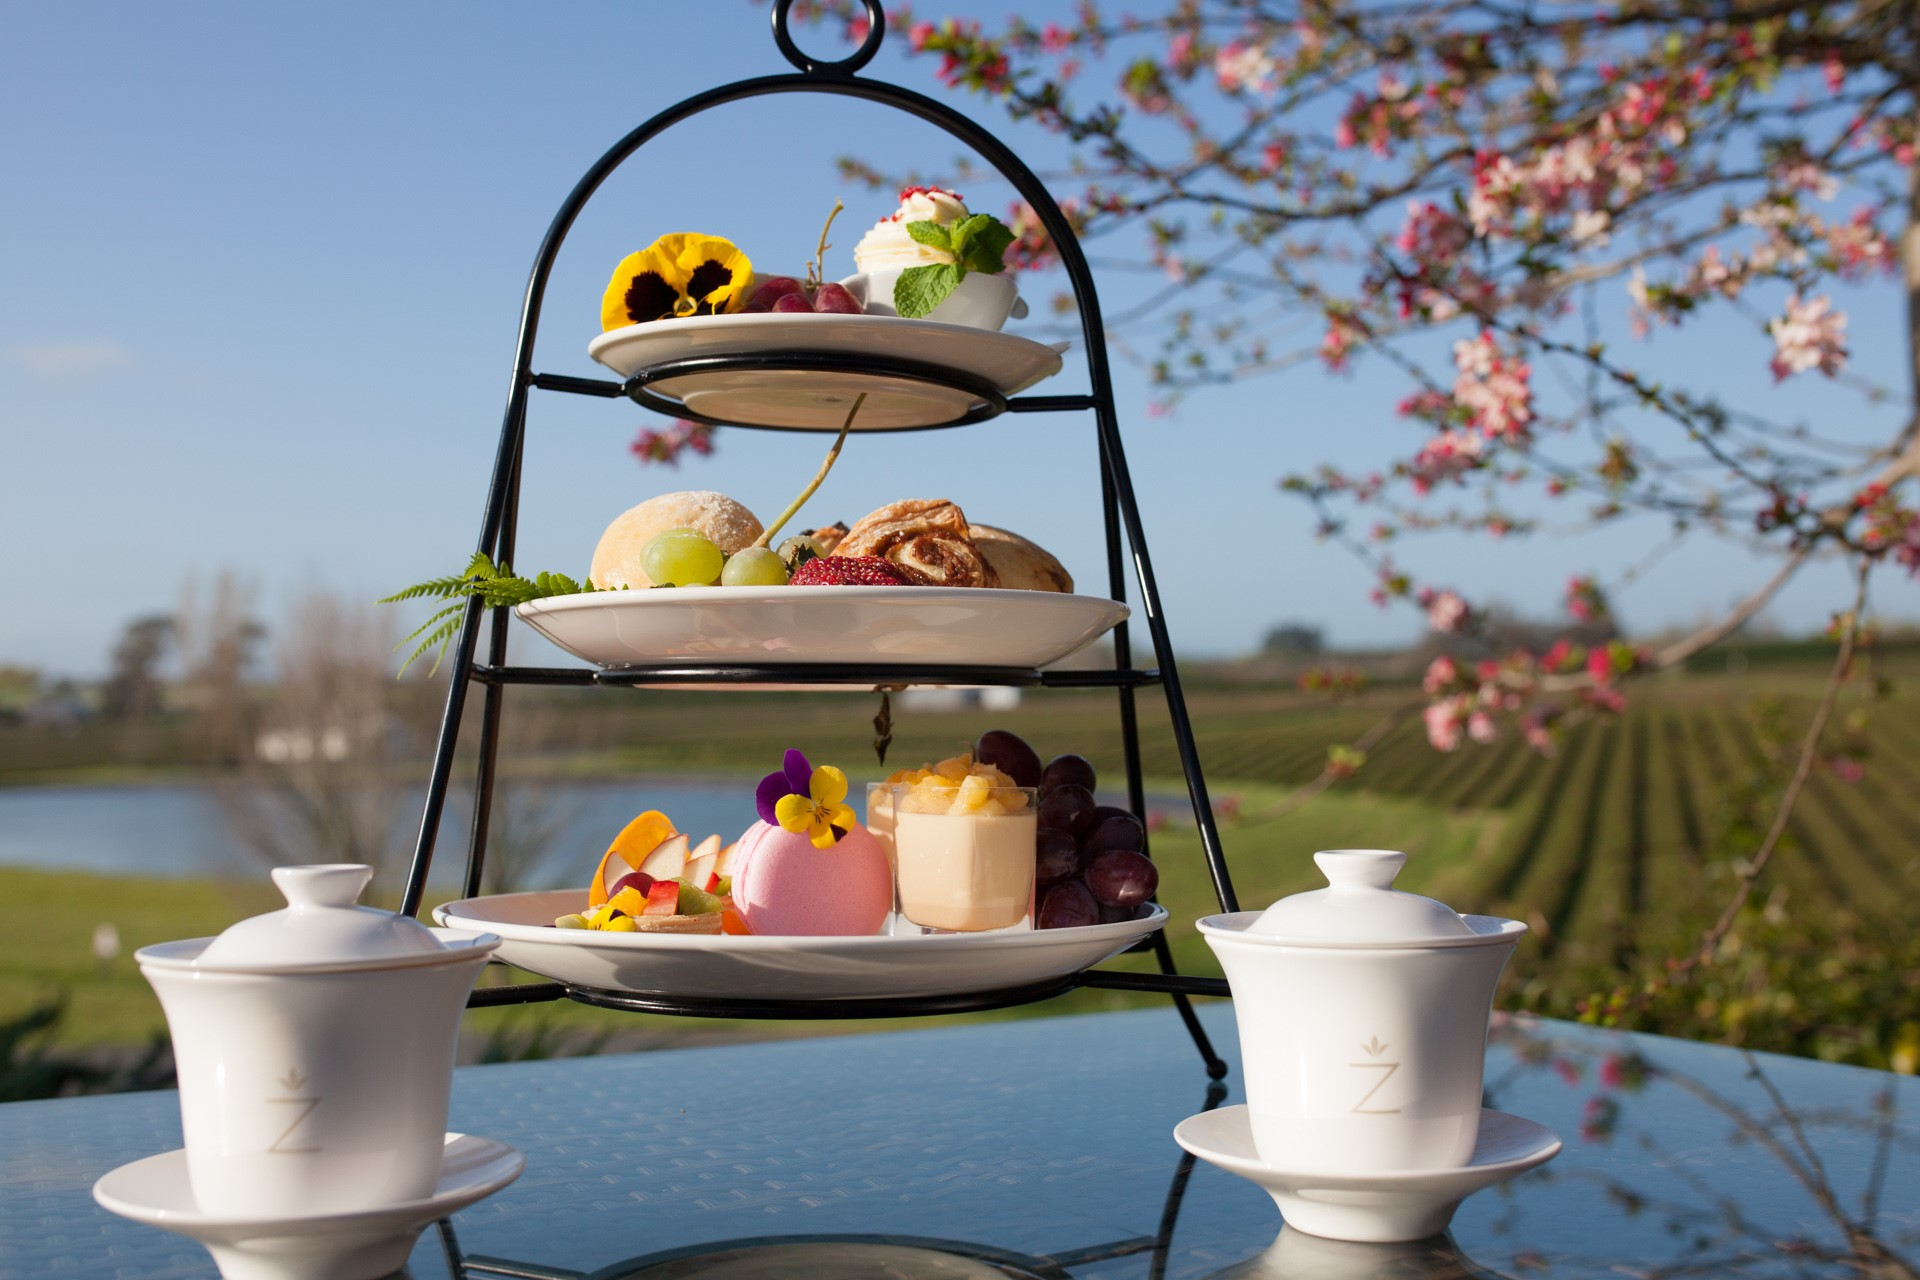 High Tea at Zealong Tea Estate, Waikato, NZ